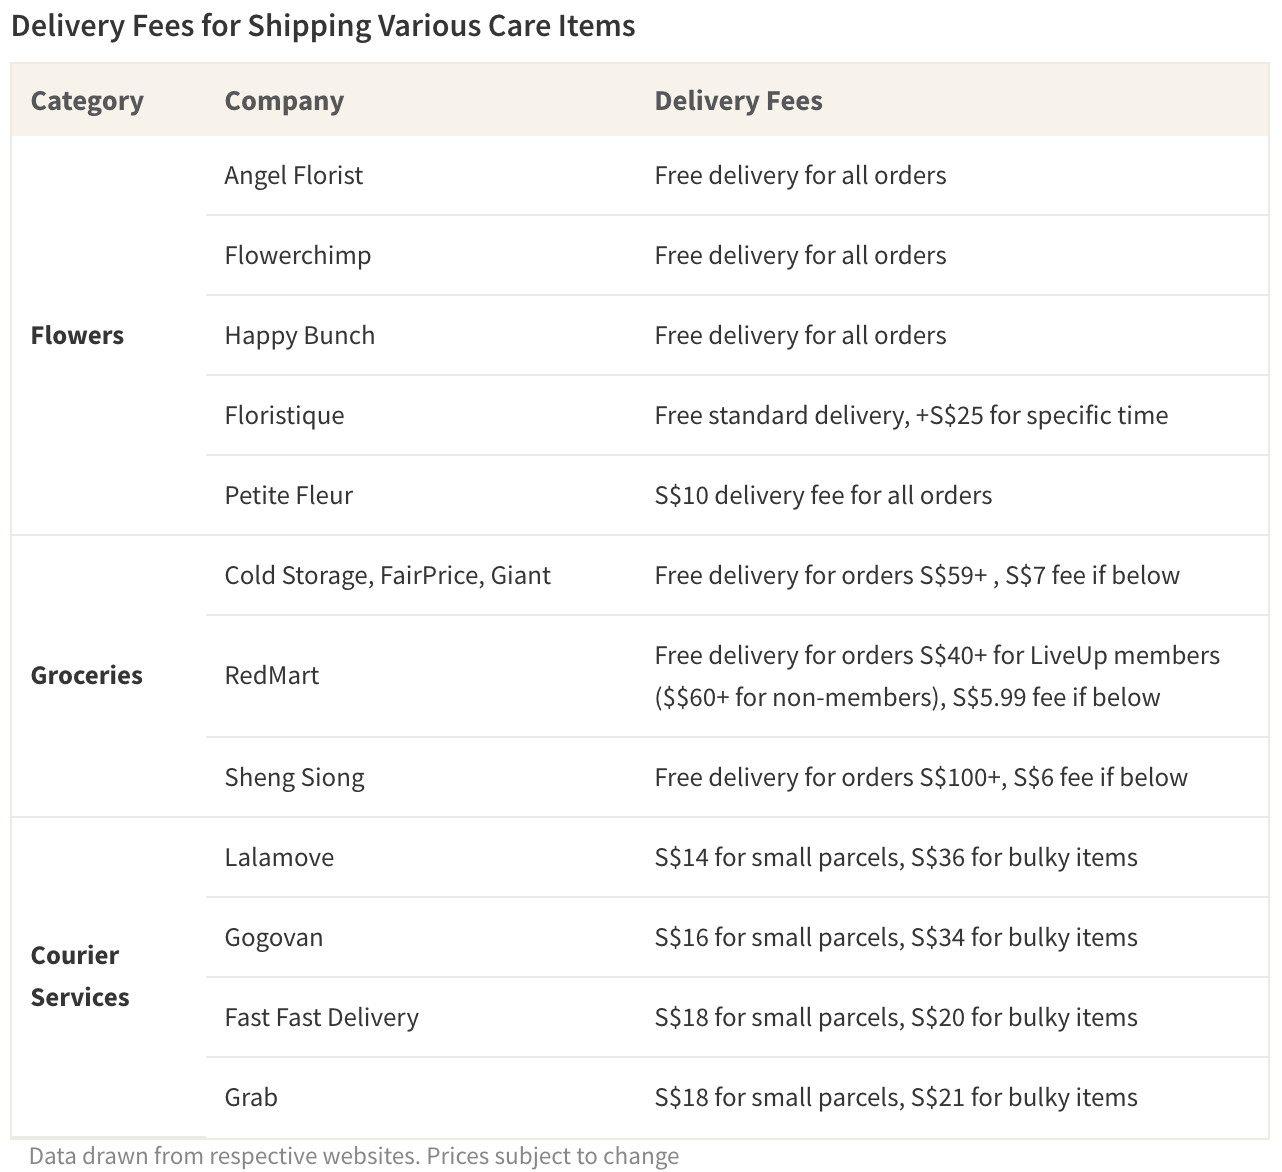 Table of delivery costs for shipping various care items to your loved one